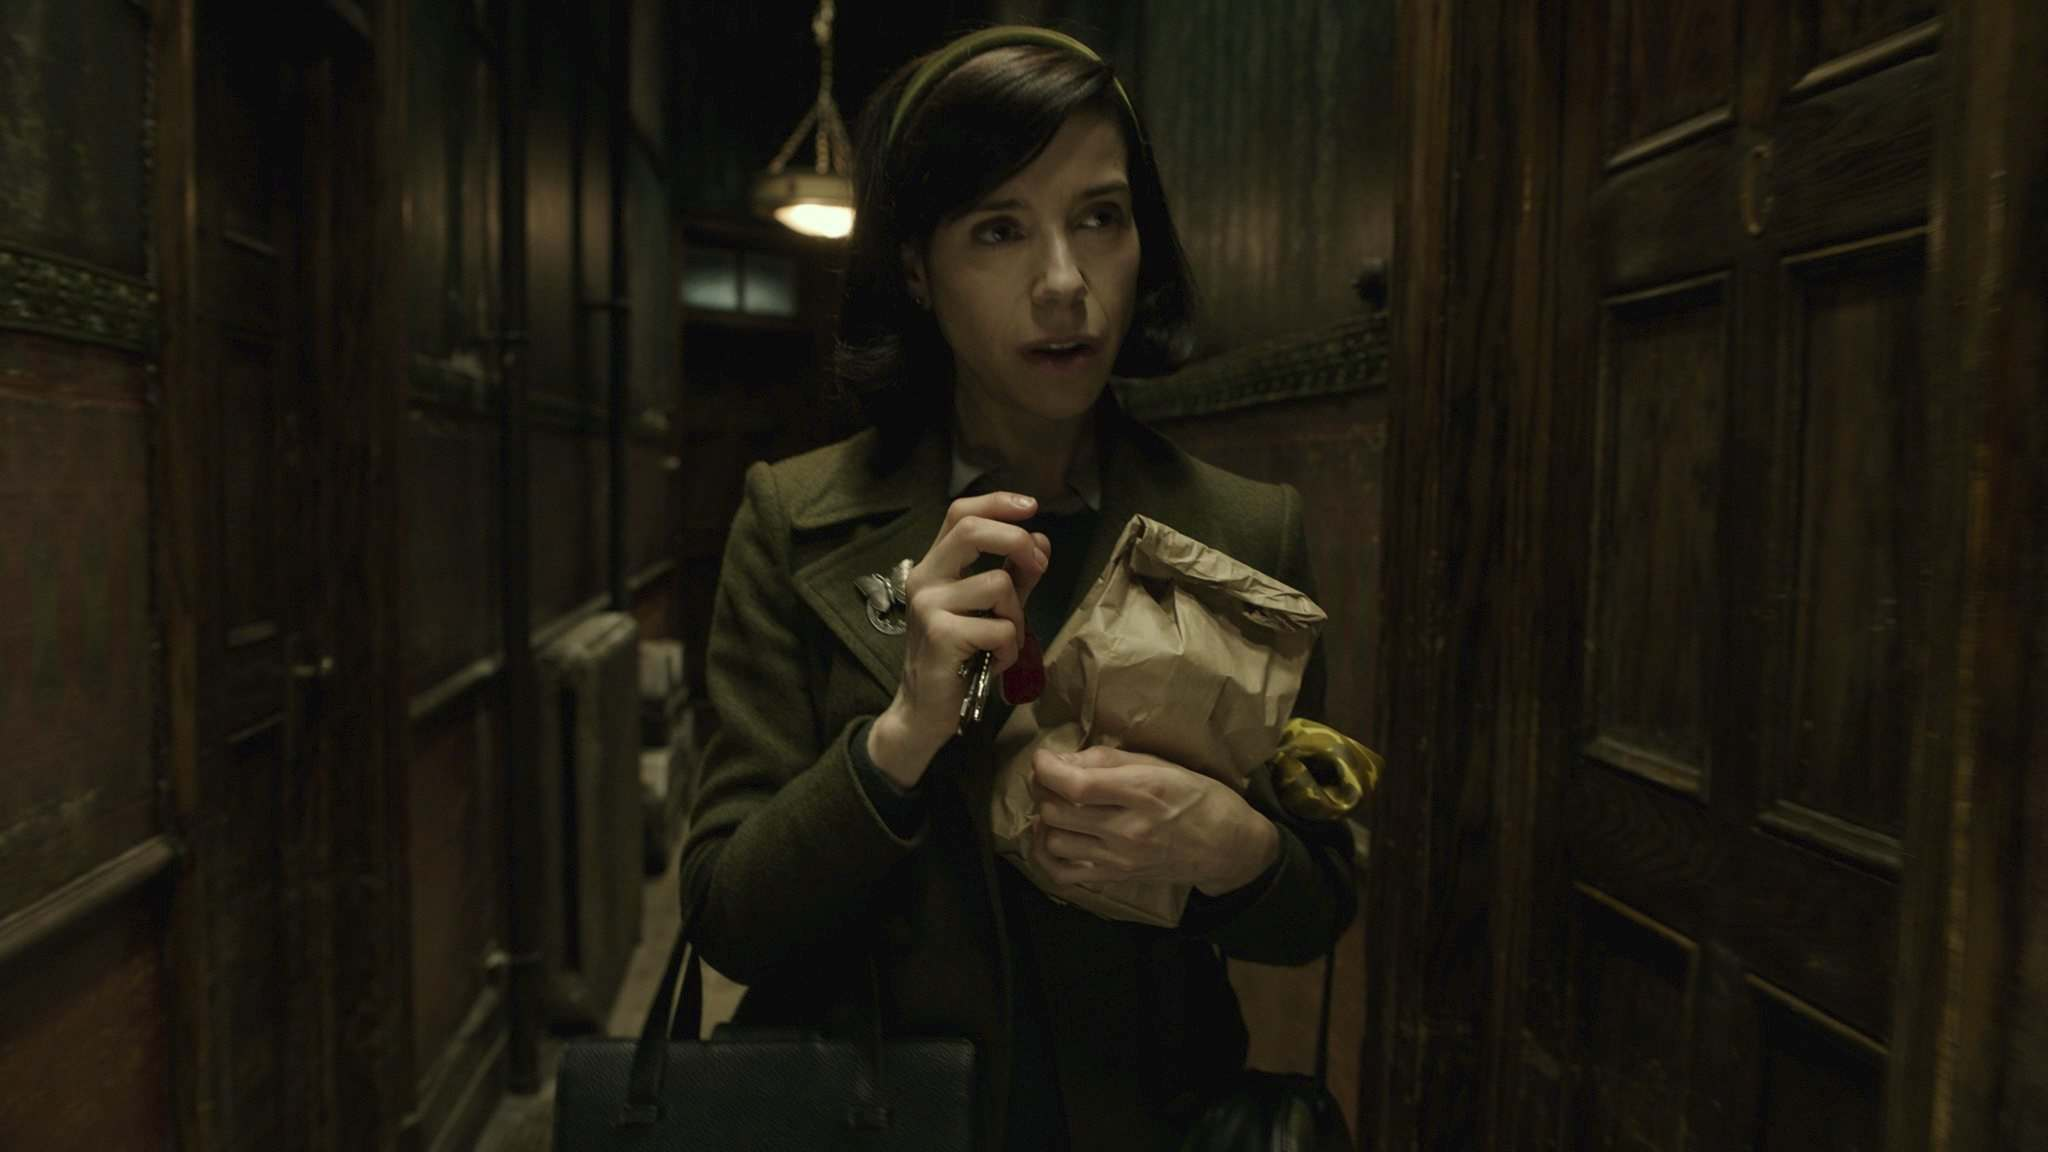 Sally Hawkins plays Elisa Esposito in Guillermo del Toro's The Shape of Water. Hawkins takes on the role with all the humour and courage of her character.</p></p>(Photos by Kerry Hayes)</p><p>